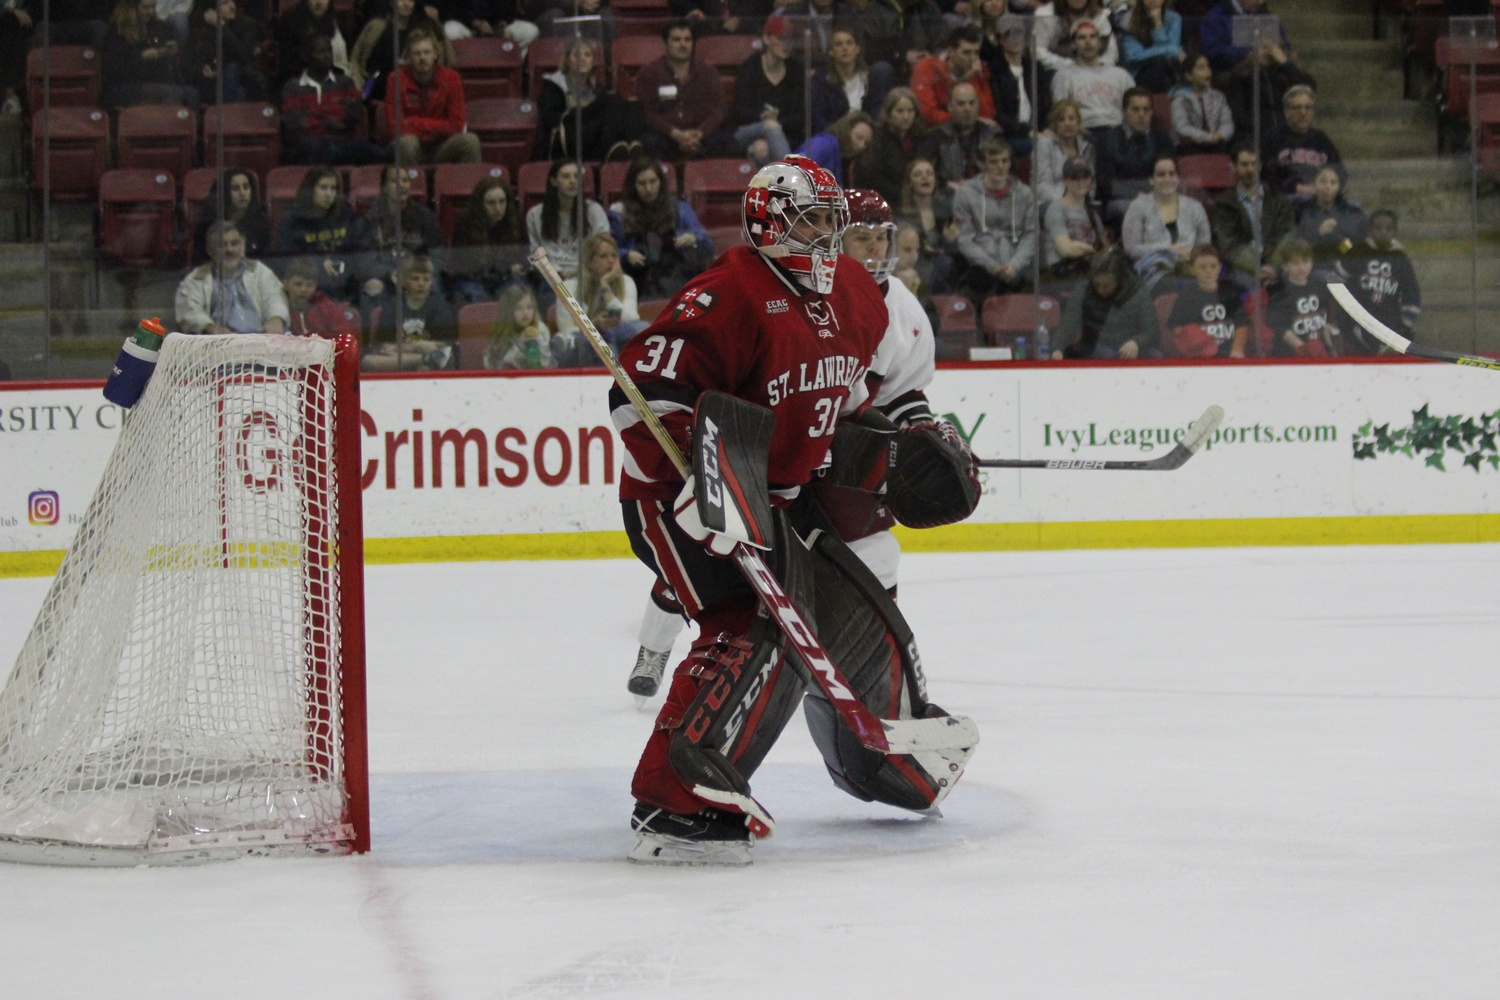 St. Lawrence net-minder Arthur Brey played only 4:22 of Saturday's game, swapping out after he conceded three goals on four shots.